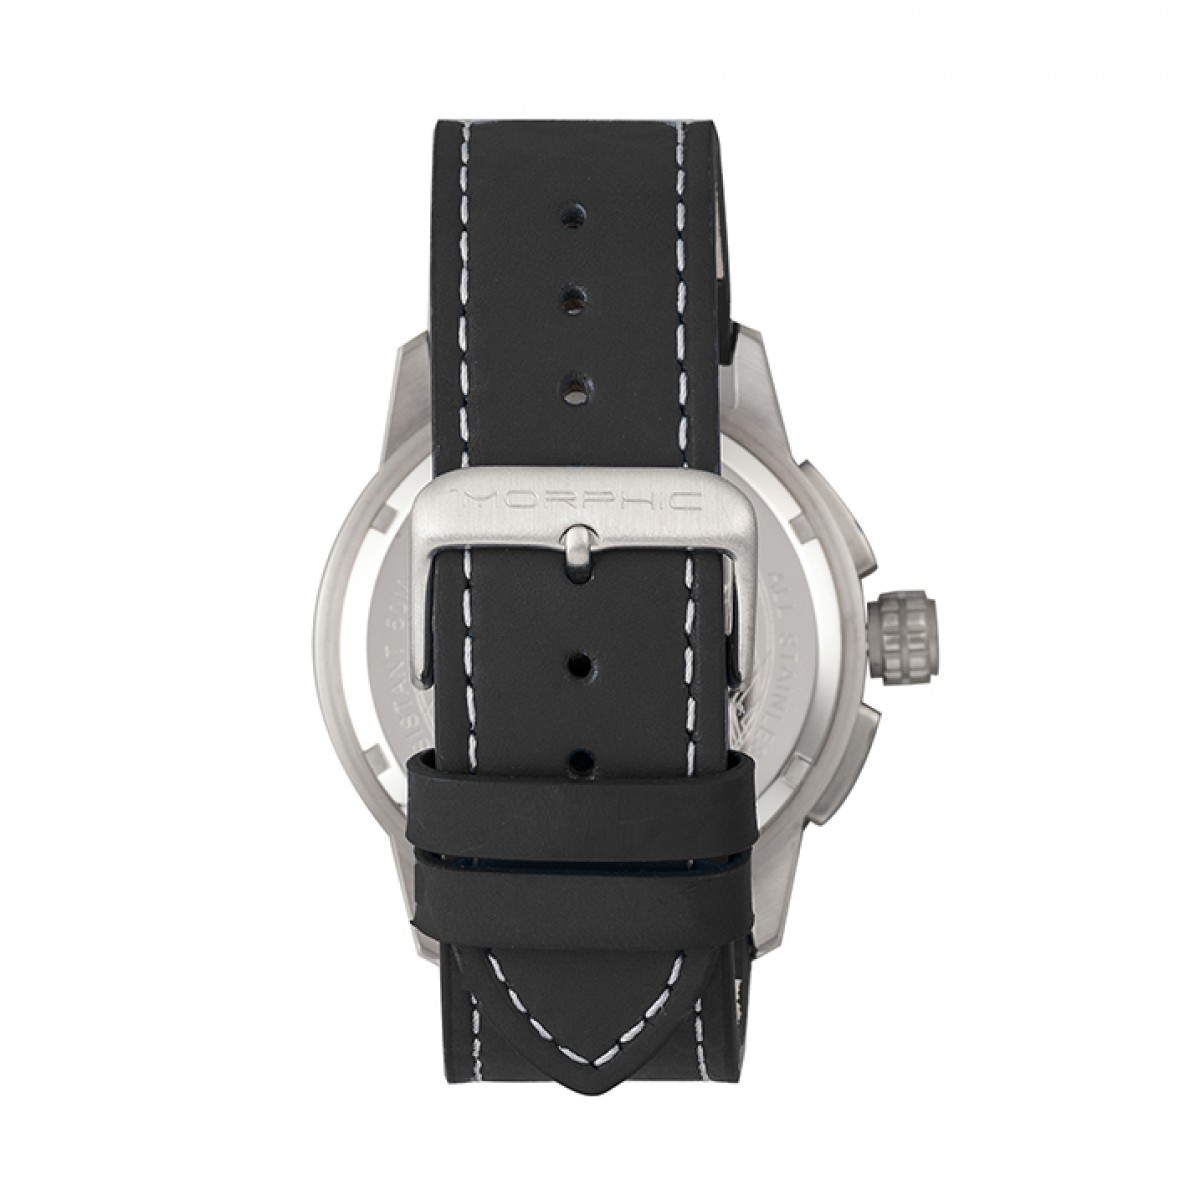 Series Band M61 Morphic Watch Wdate Leather Silver Chronograph erCoWxBd